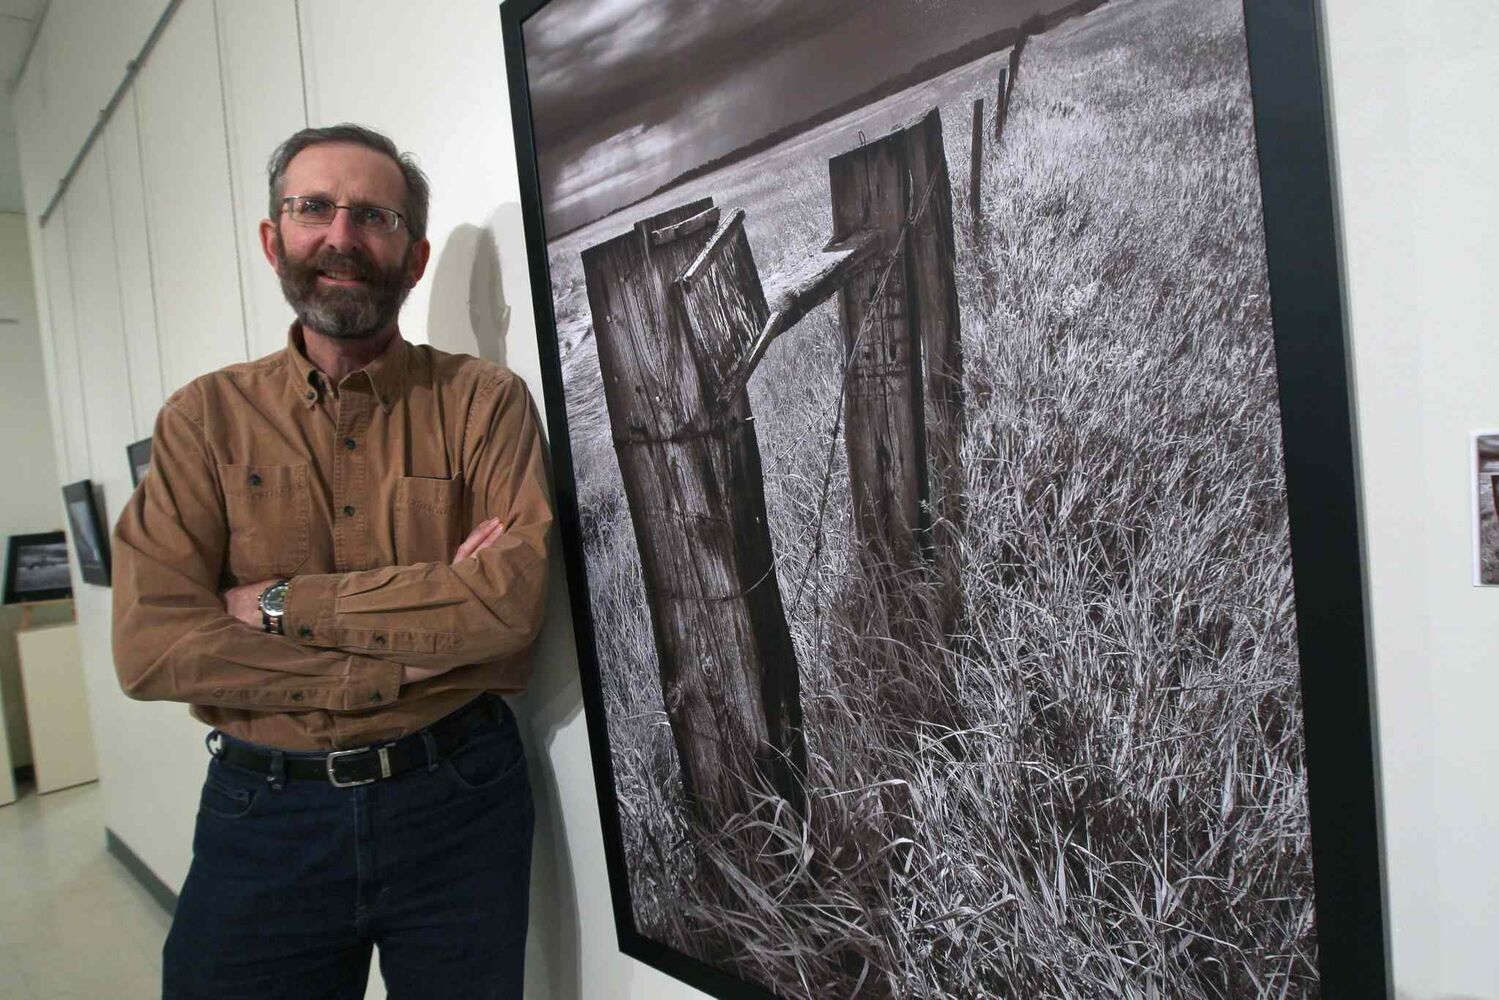 Manitoba farmer-turned-photographer Stan Wiebe, 54, has a wonderfully disquieting exhibit of 46 photos, Almost Black and White, on display at Portage La Prairie's Portage and District Arts Centre until Feb. 14. (JOE BRYKSA / WINNIPEG FREE PRESS)